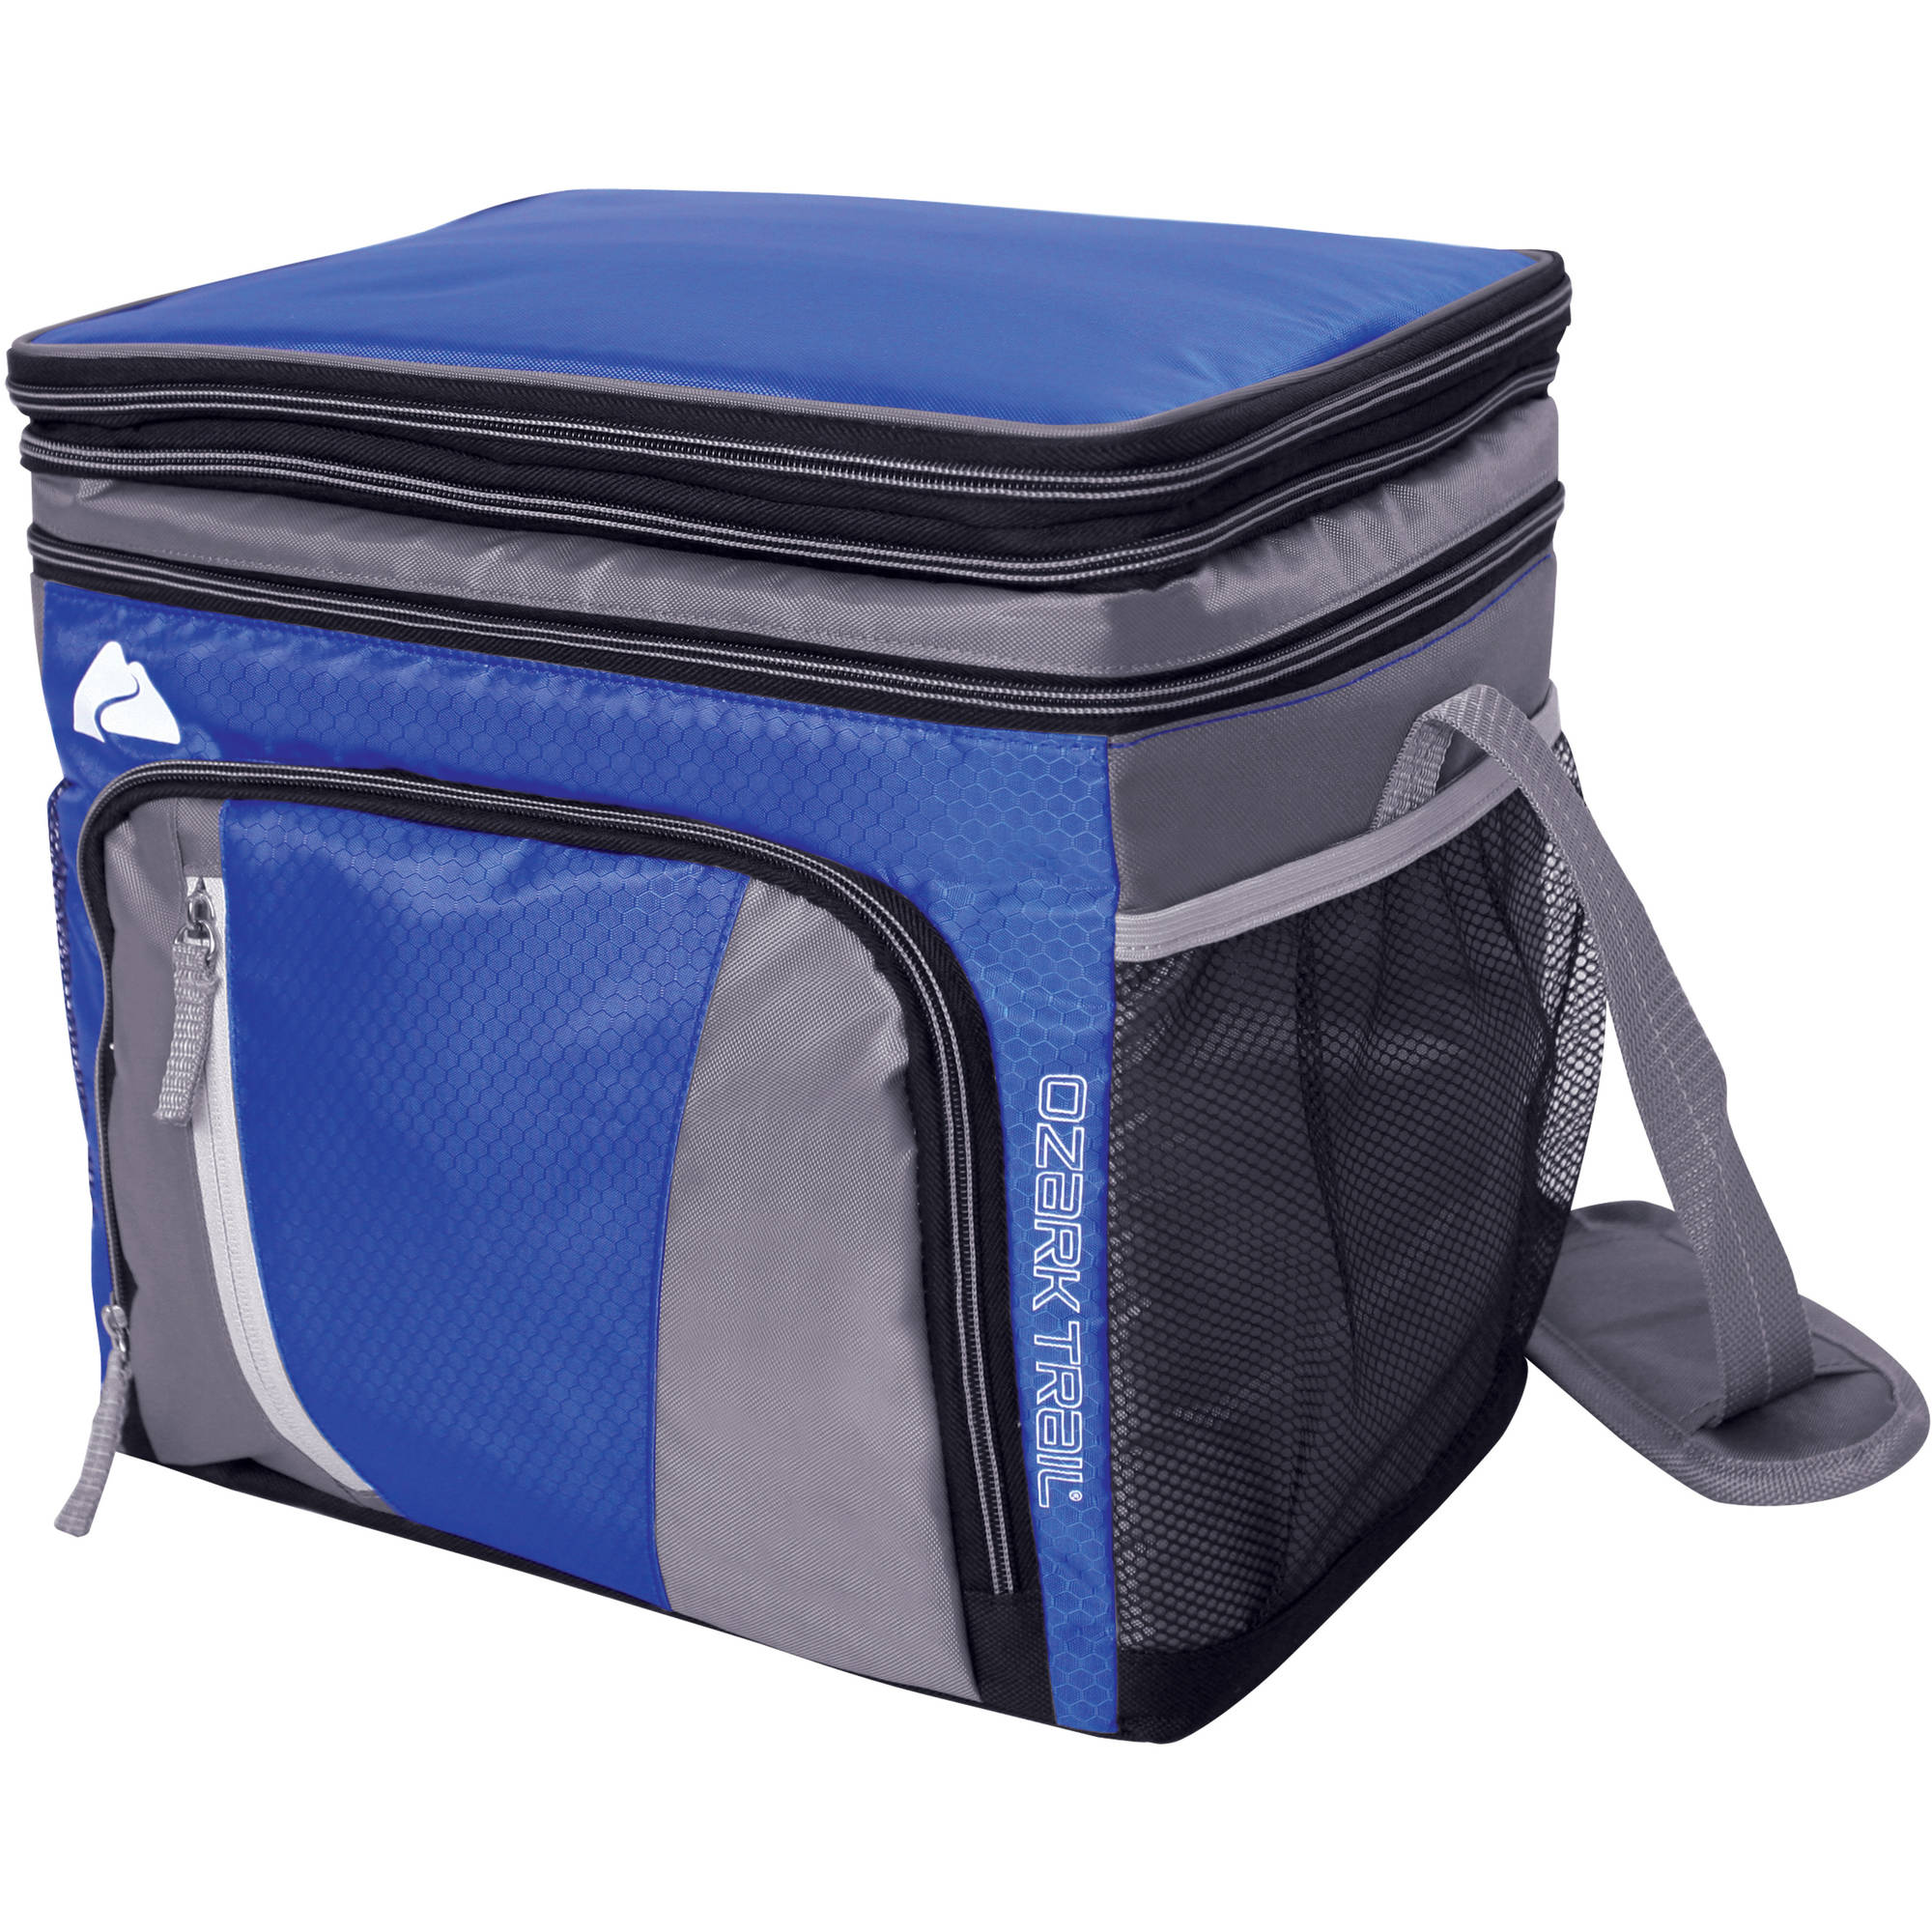 Ozark Trail 24-Can Cooler with Removable Hardliner, Blue